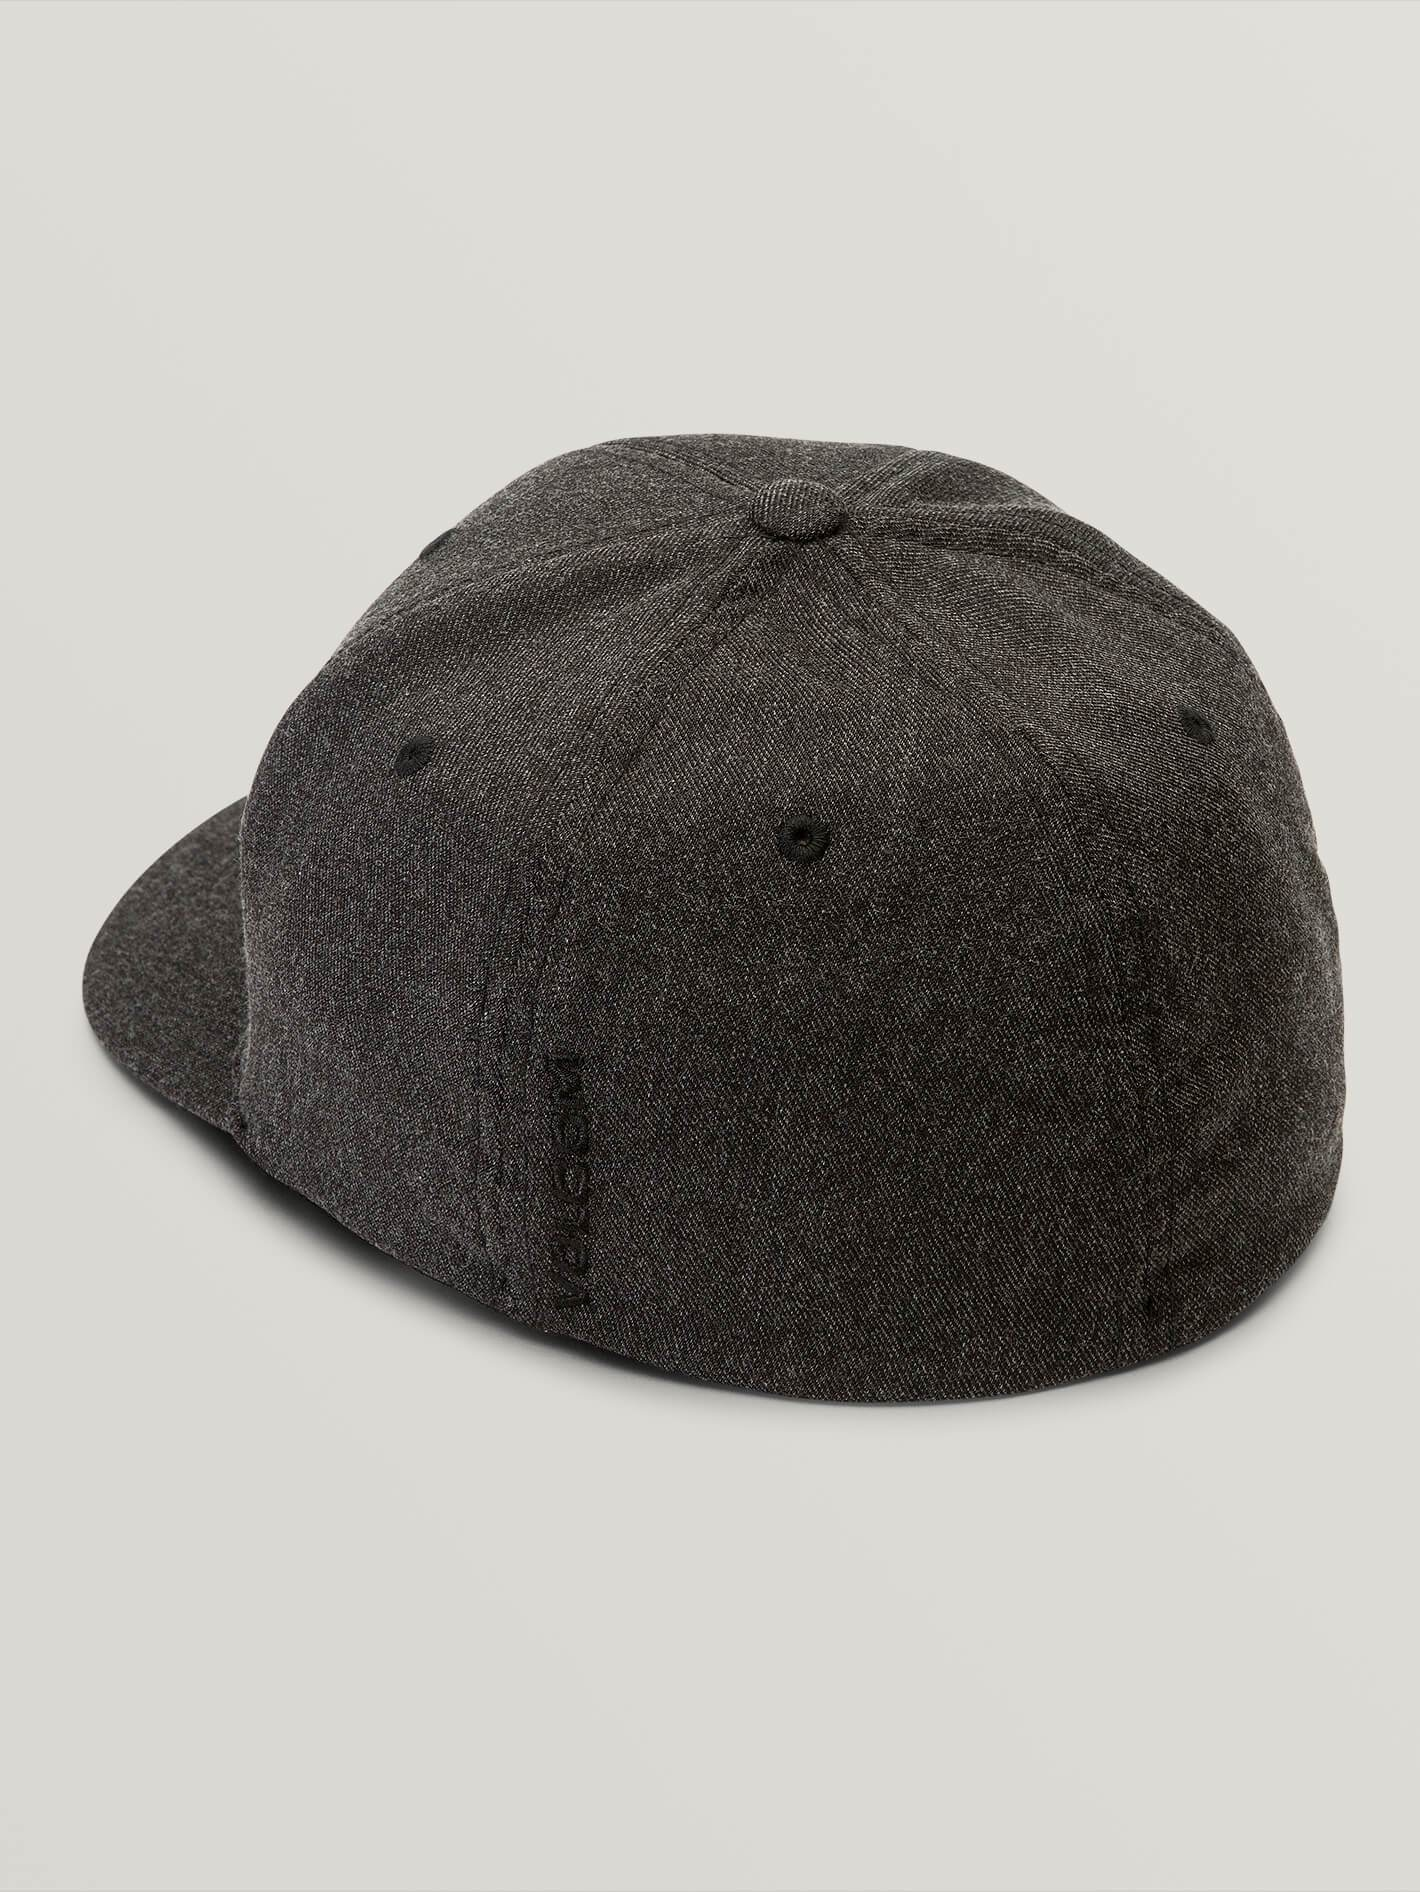 finest selection 5bde9 76c30 VOLCOM Full Stone Heather XFit® Hat - Charcoal Heather. Press tab to enlarge